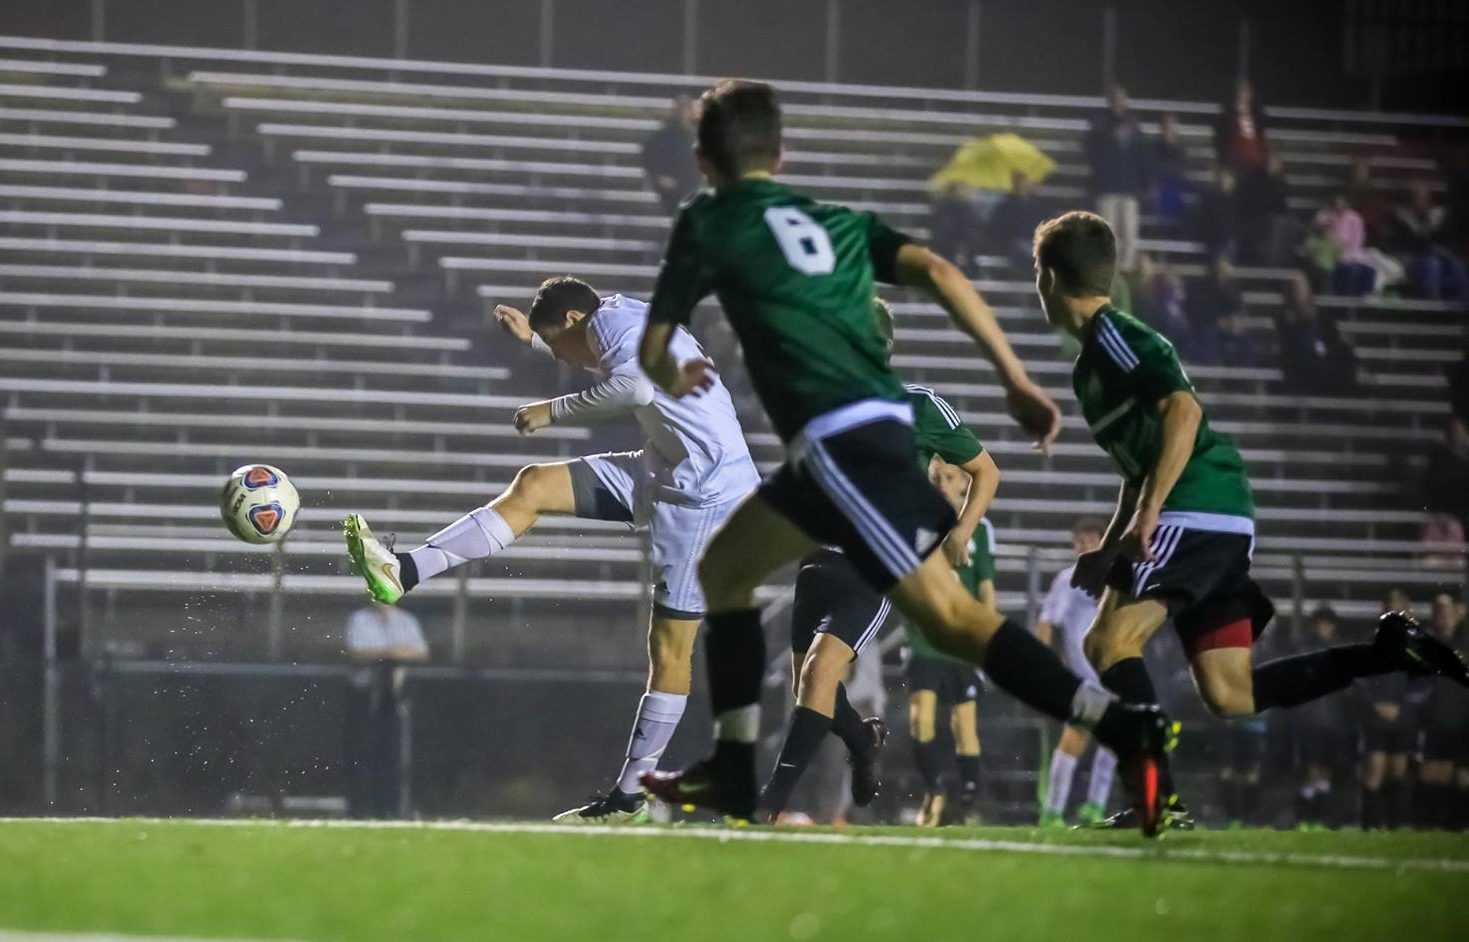 Collin Powers blasts a shot that finds the back of the net for Muskegon Catholic. Photo/Tim Reilly